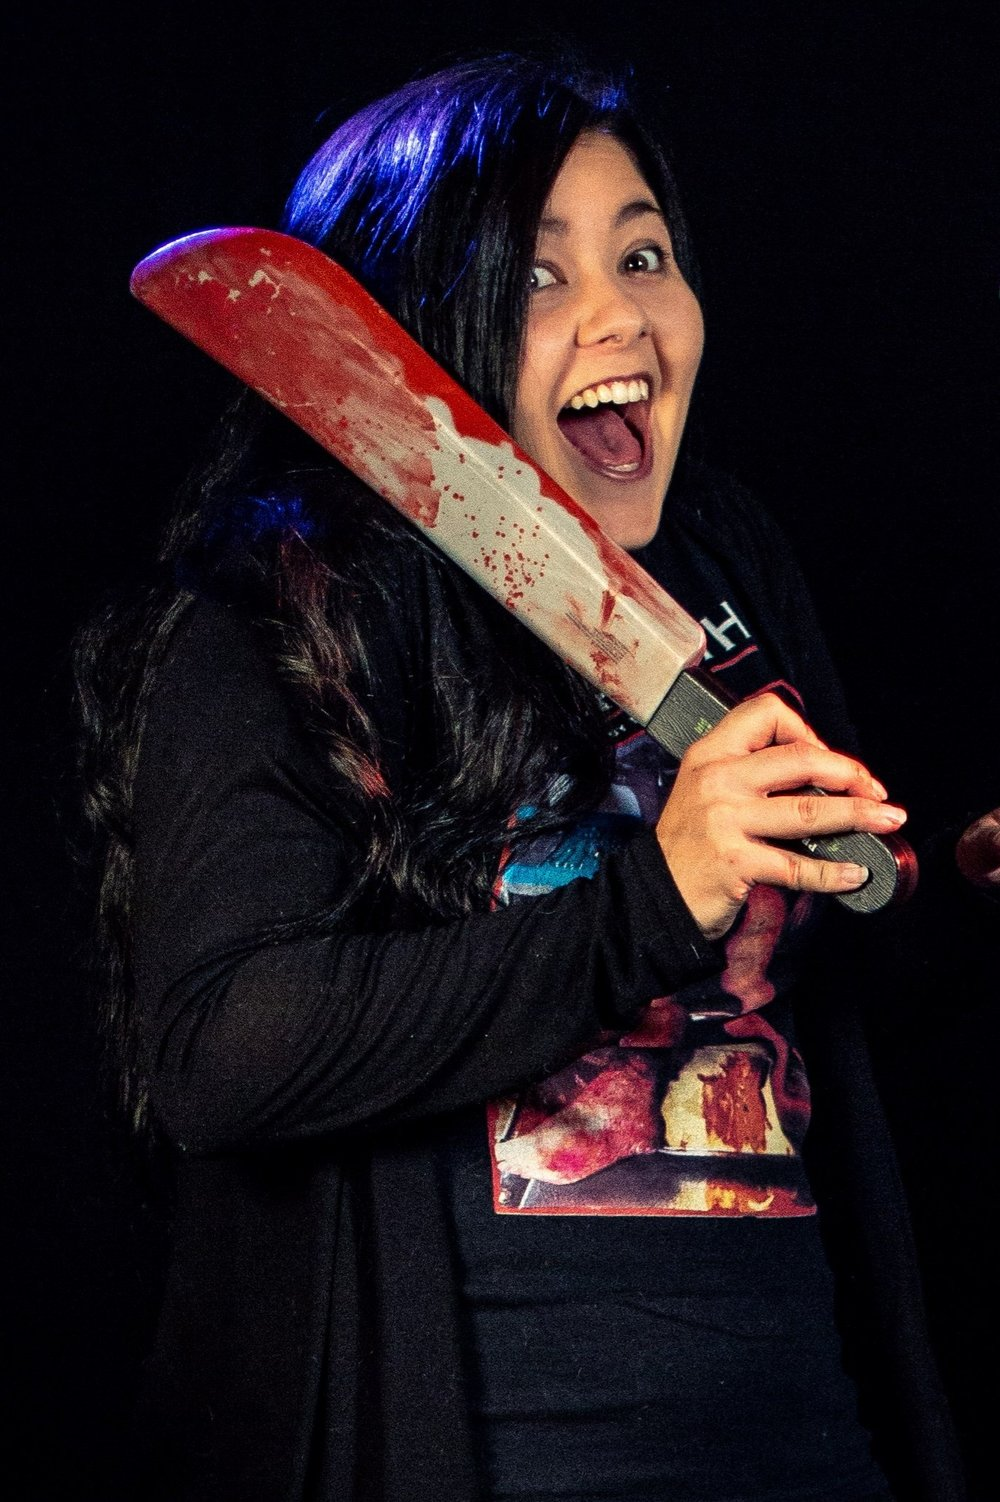 JASMINE MARTINEZ -   (Bitches of Horror Podcast Co-Creator and Co-Host)I'm a crazy Puerto Rican Swedish girl straight out of New Jersey who loves all things horror. I have a soft spot for Splatter and occult movies. I'm the co-host of Bitches of Horror and also the proof reader for the independent underground gore magazine,